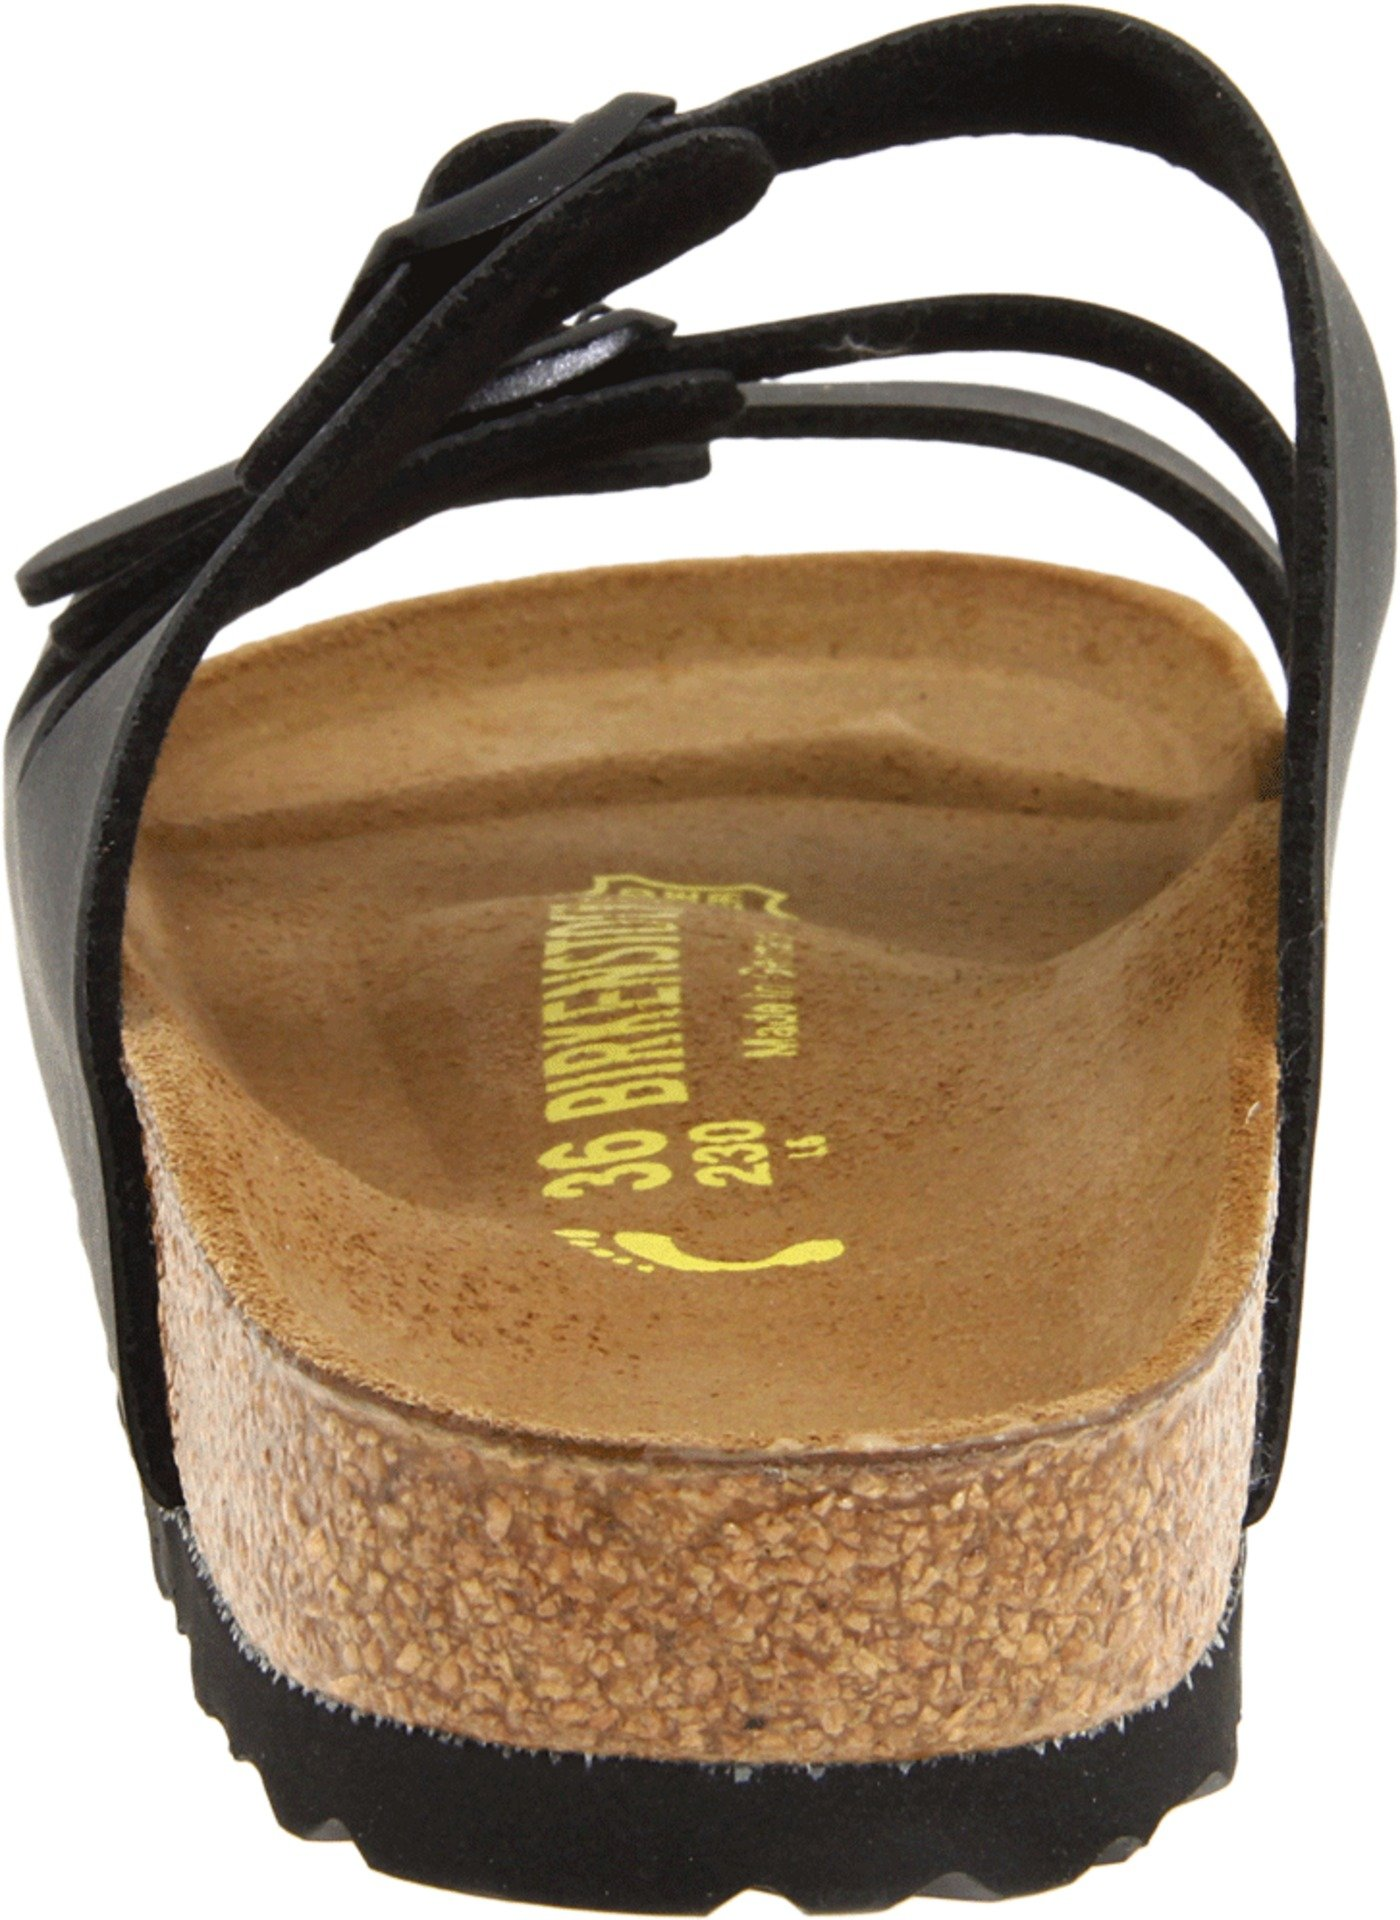 Birkenstock Women's Florida Sandals,Black,38 N EU / 7-7.5 AA(N) US by Birkenstock (Image #2)